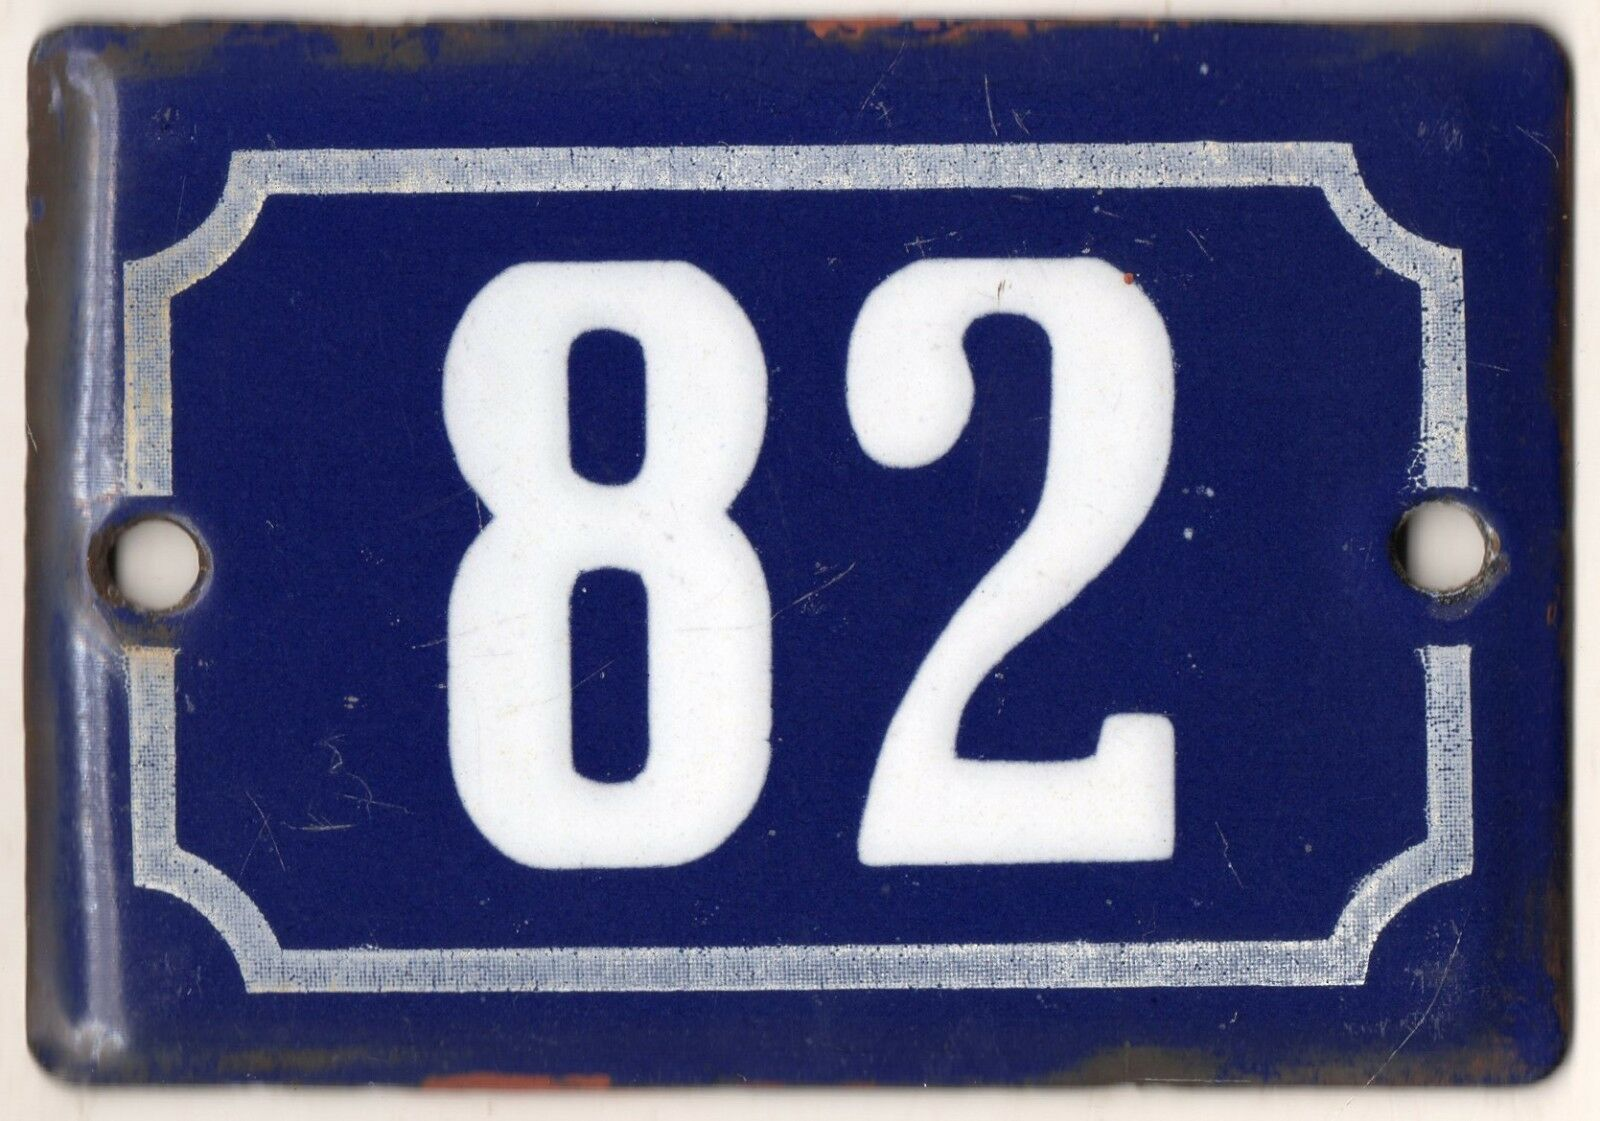 Cute old blue French house number 82 door gate plate plaque enamel metal sign